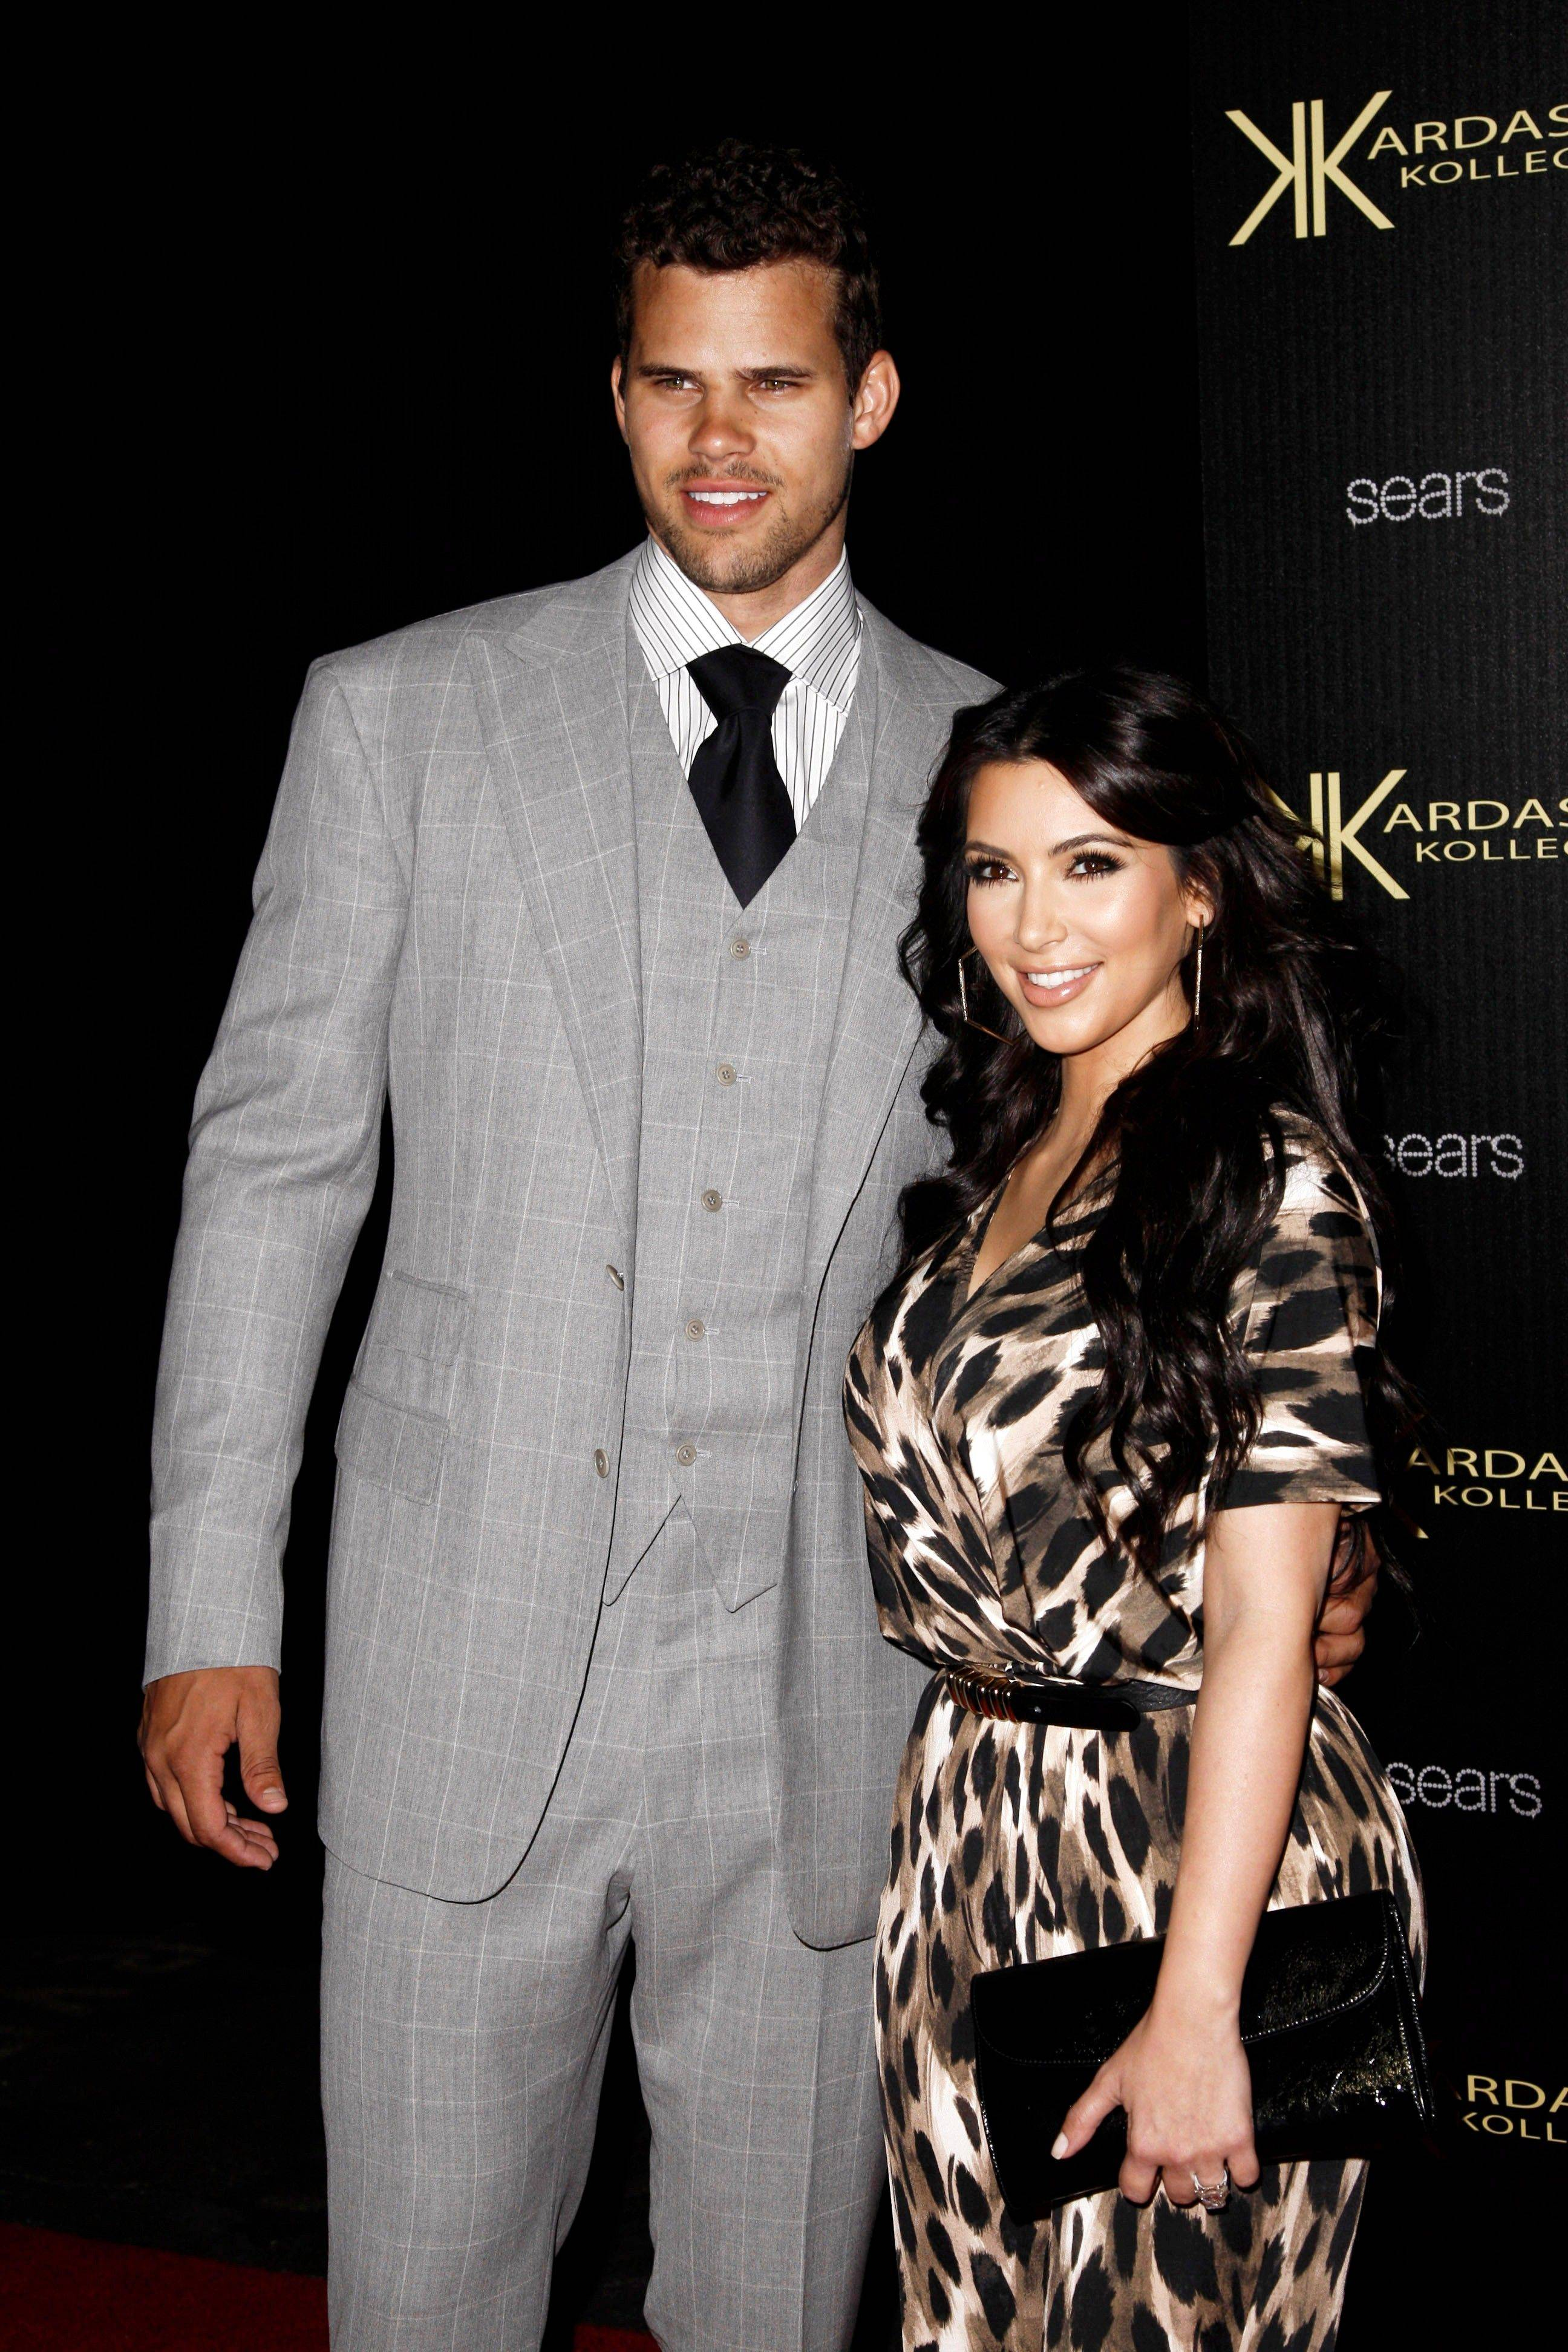 Kim Kardashian and NBA basketball player Kris Humphries were married Saturday in Montecito, Calif.